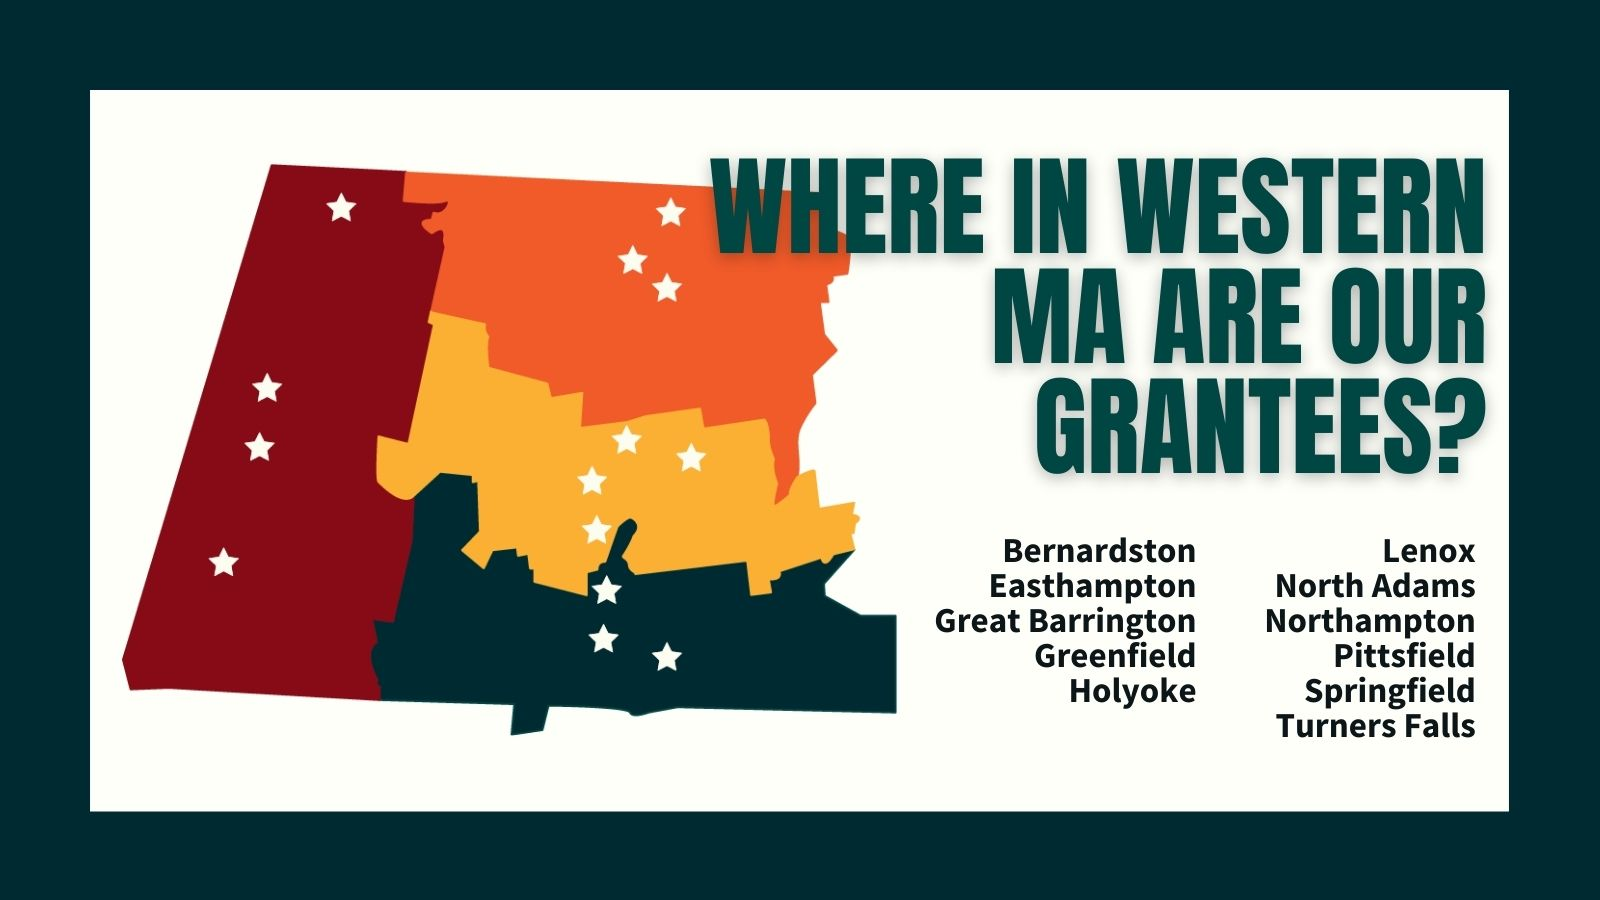 Where in Western Mass. are our grantees?